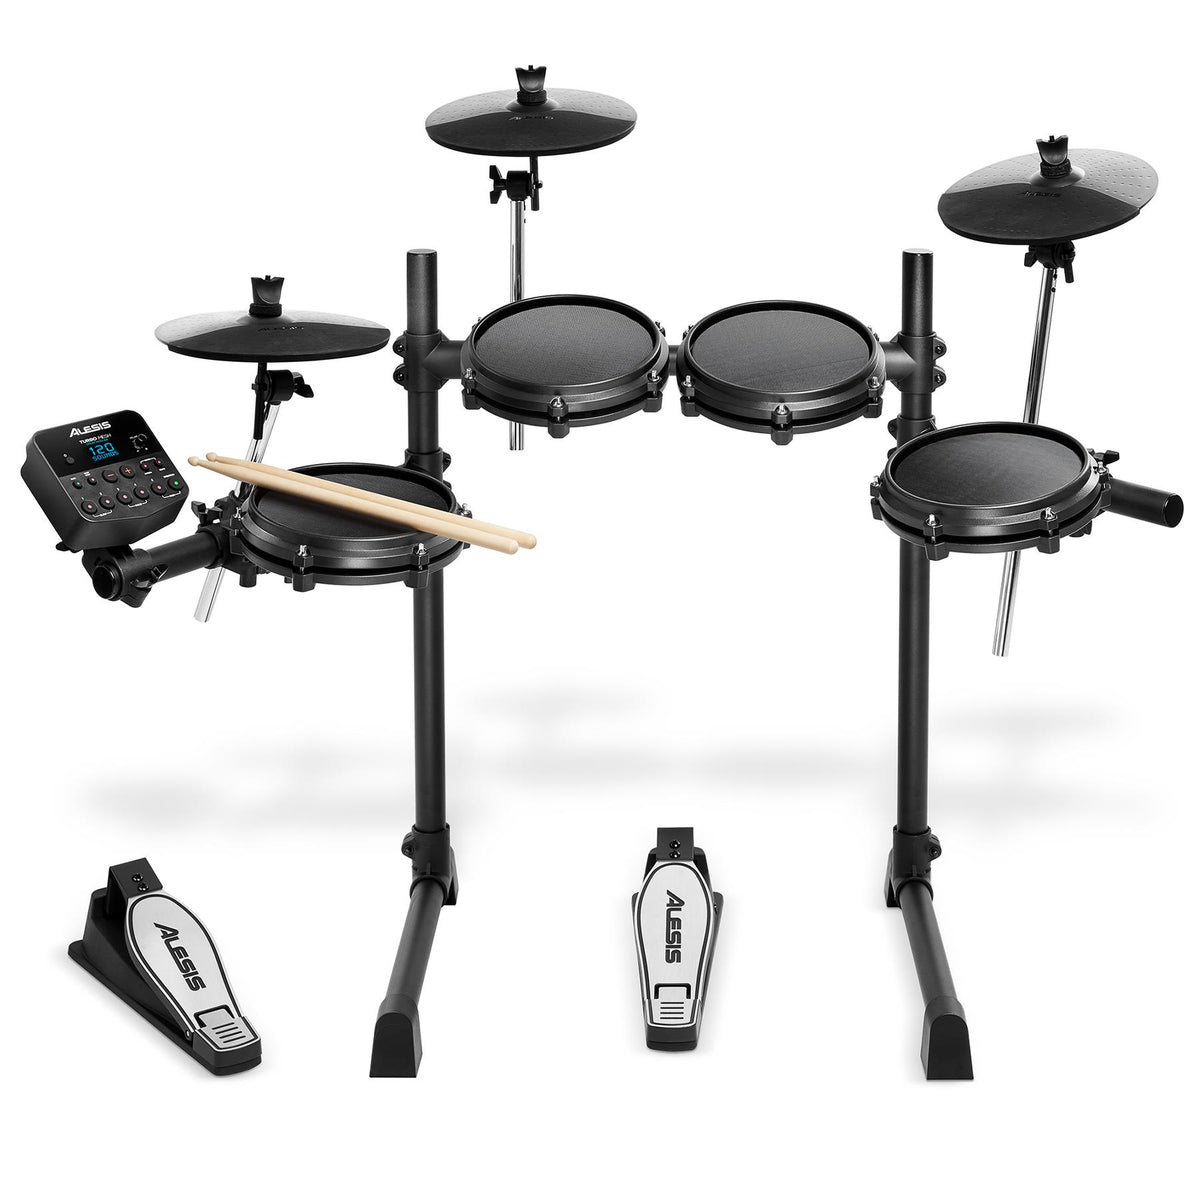 Alesis Turbo Mesh Kit 7-piece Electronic Drum Set with Mesh Heads